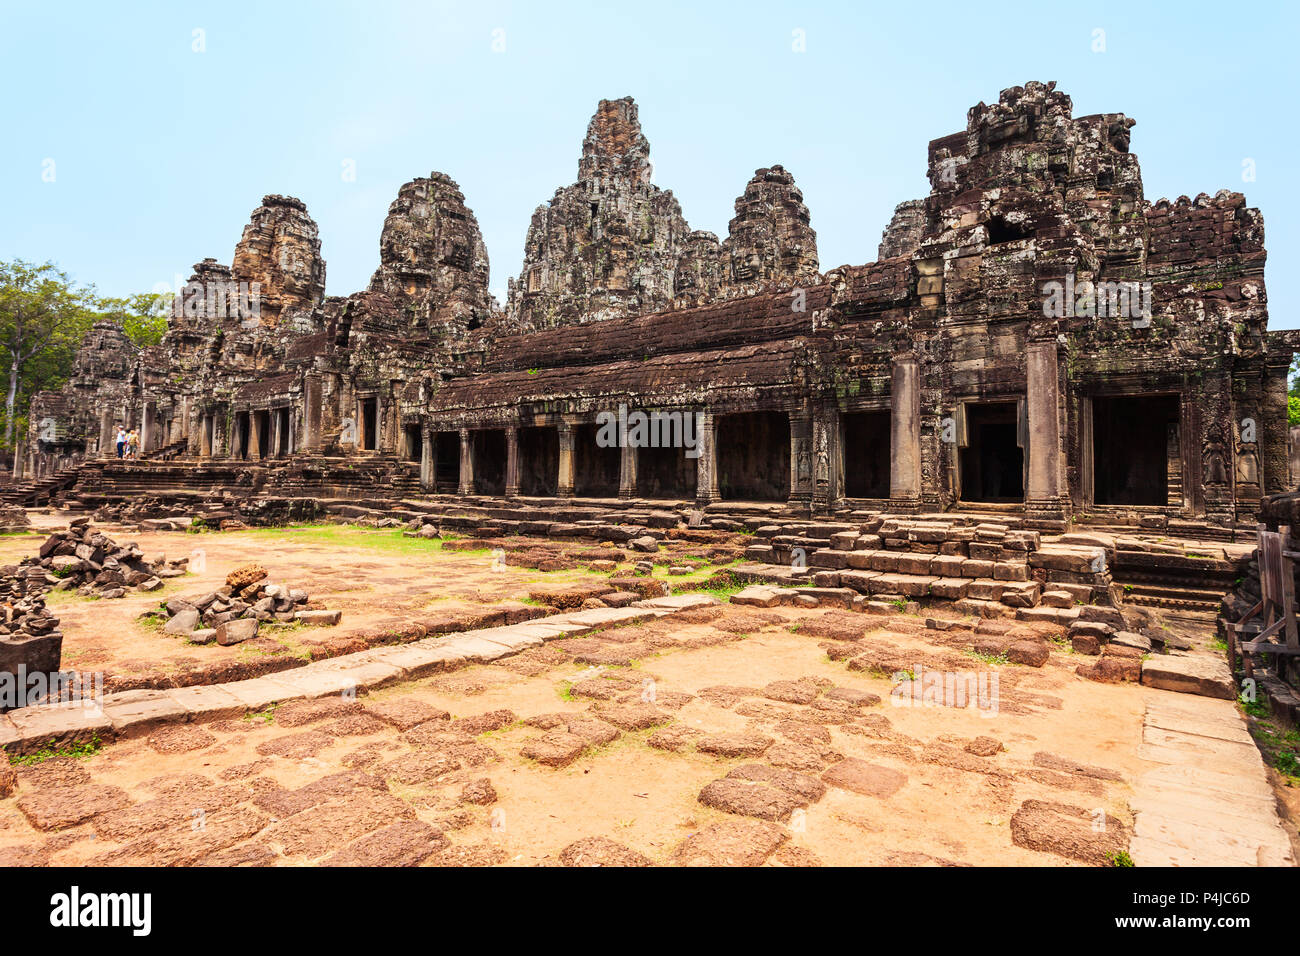 Bayon is a well known khmer temple at Angkor in Cambodia - Stock Image